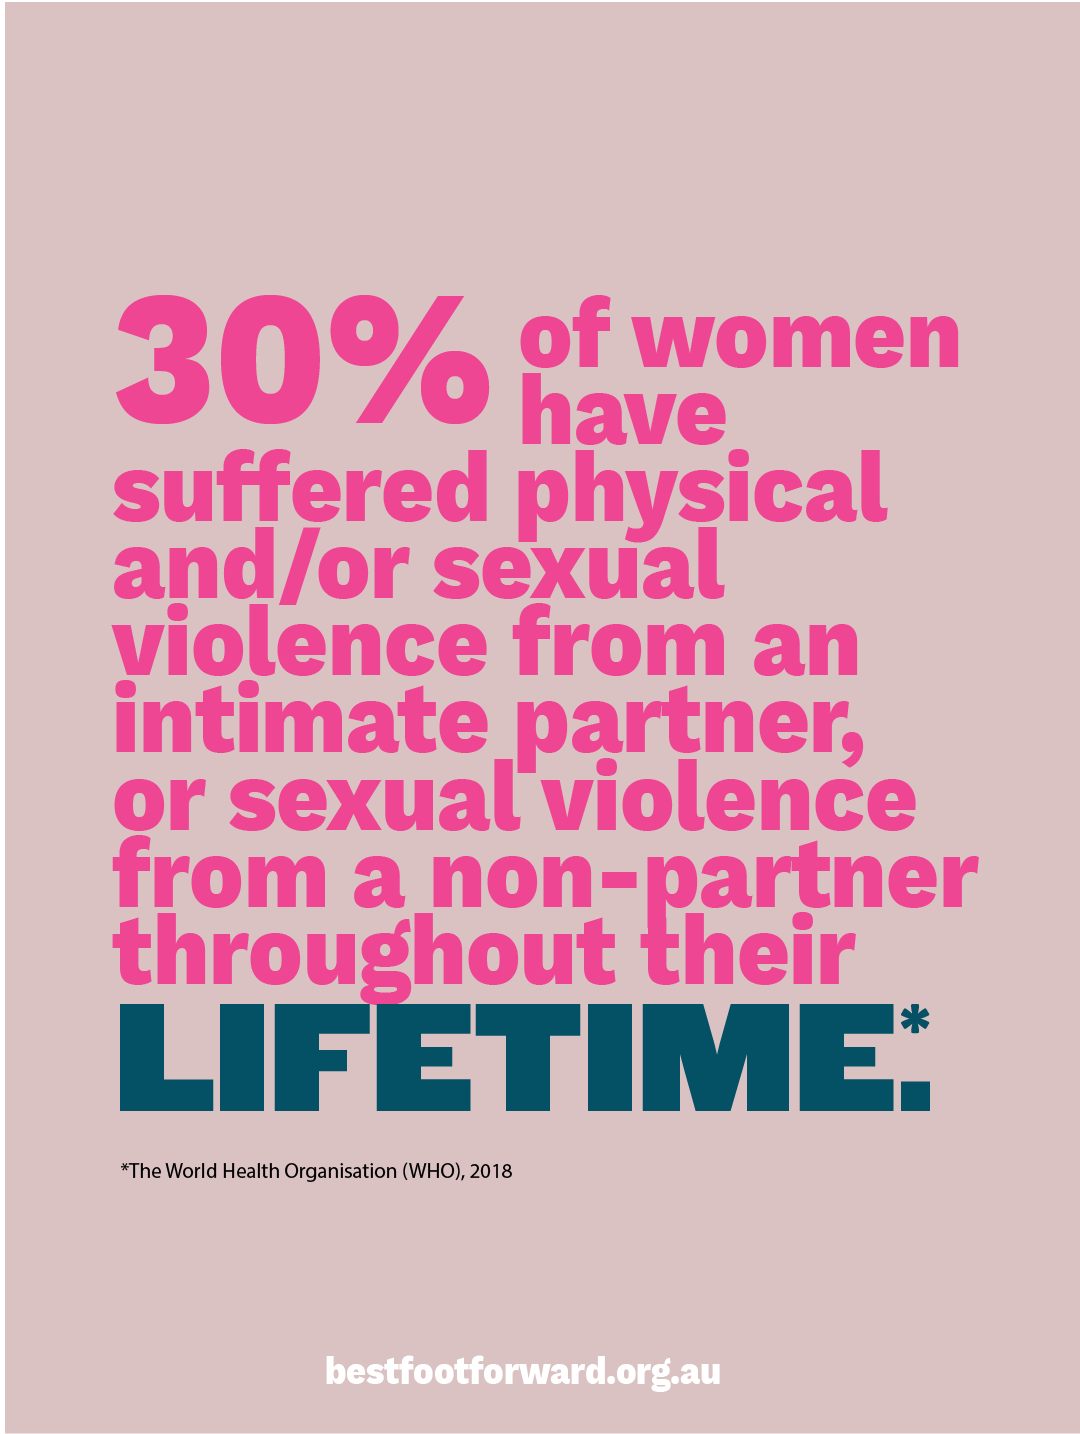 Fast Facts #1 - 30% of women